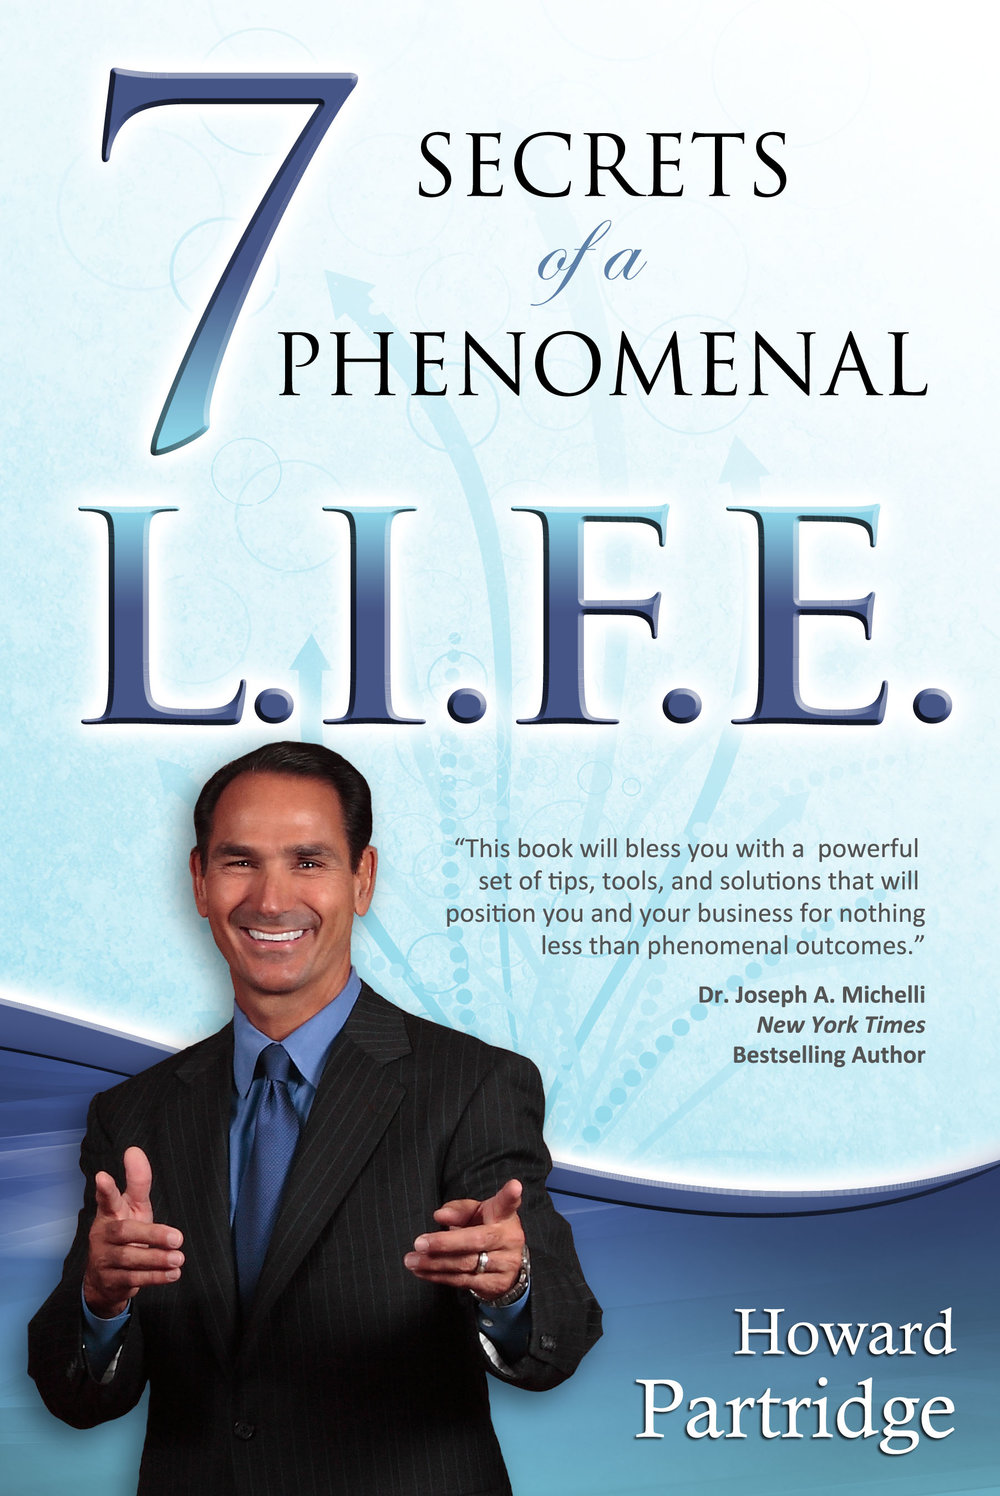 7 Secrets of a Phenomenal L.I.F.E. - By howard partridge